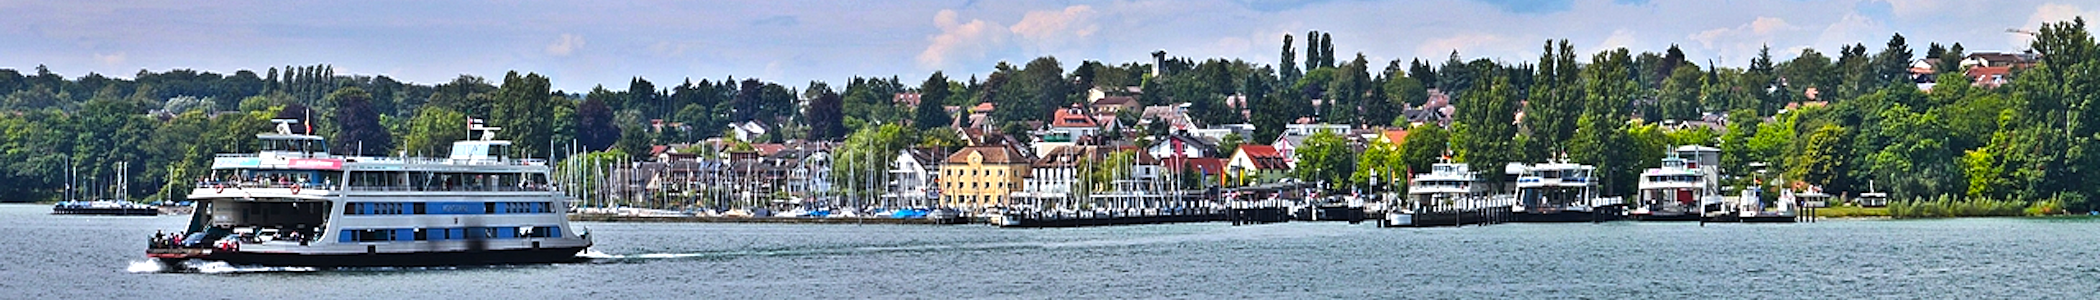 Bodensee Region Travel Guide At Wikivoyage